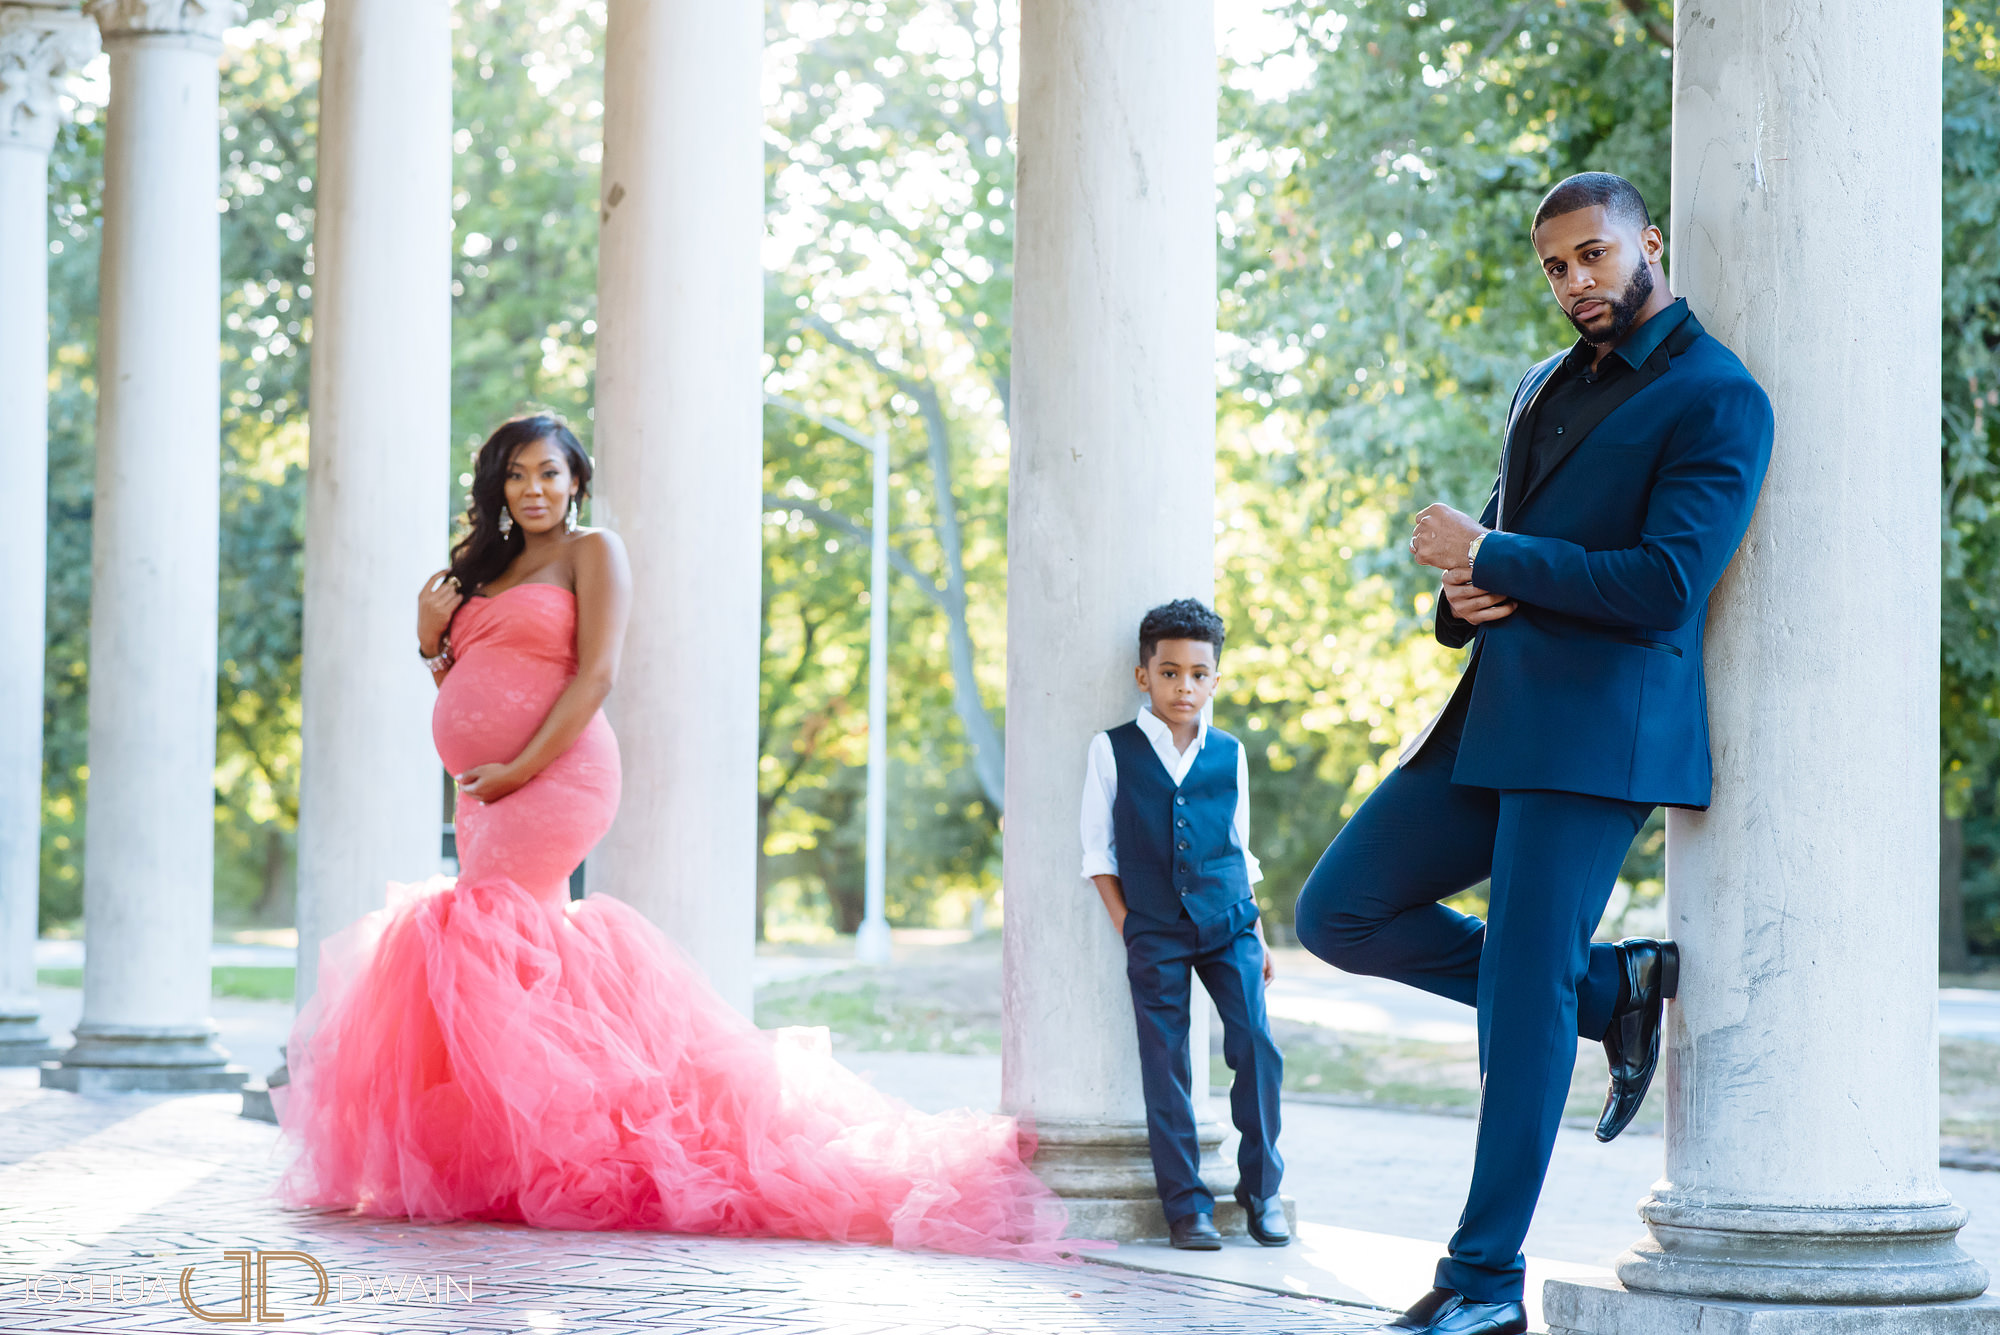 khadeen-devale-012-brooklyn-family-maternity-photographer-joshua-dwain